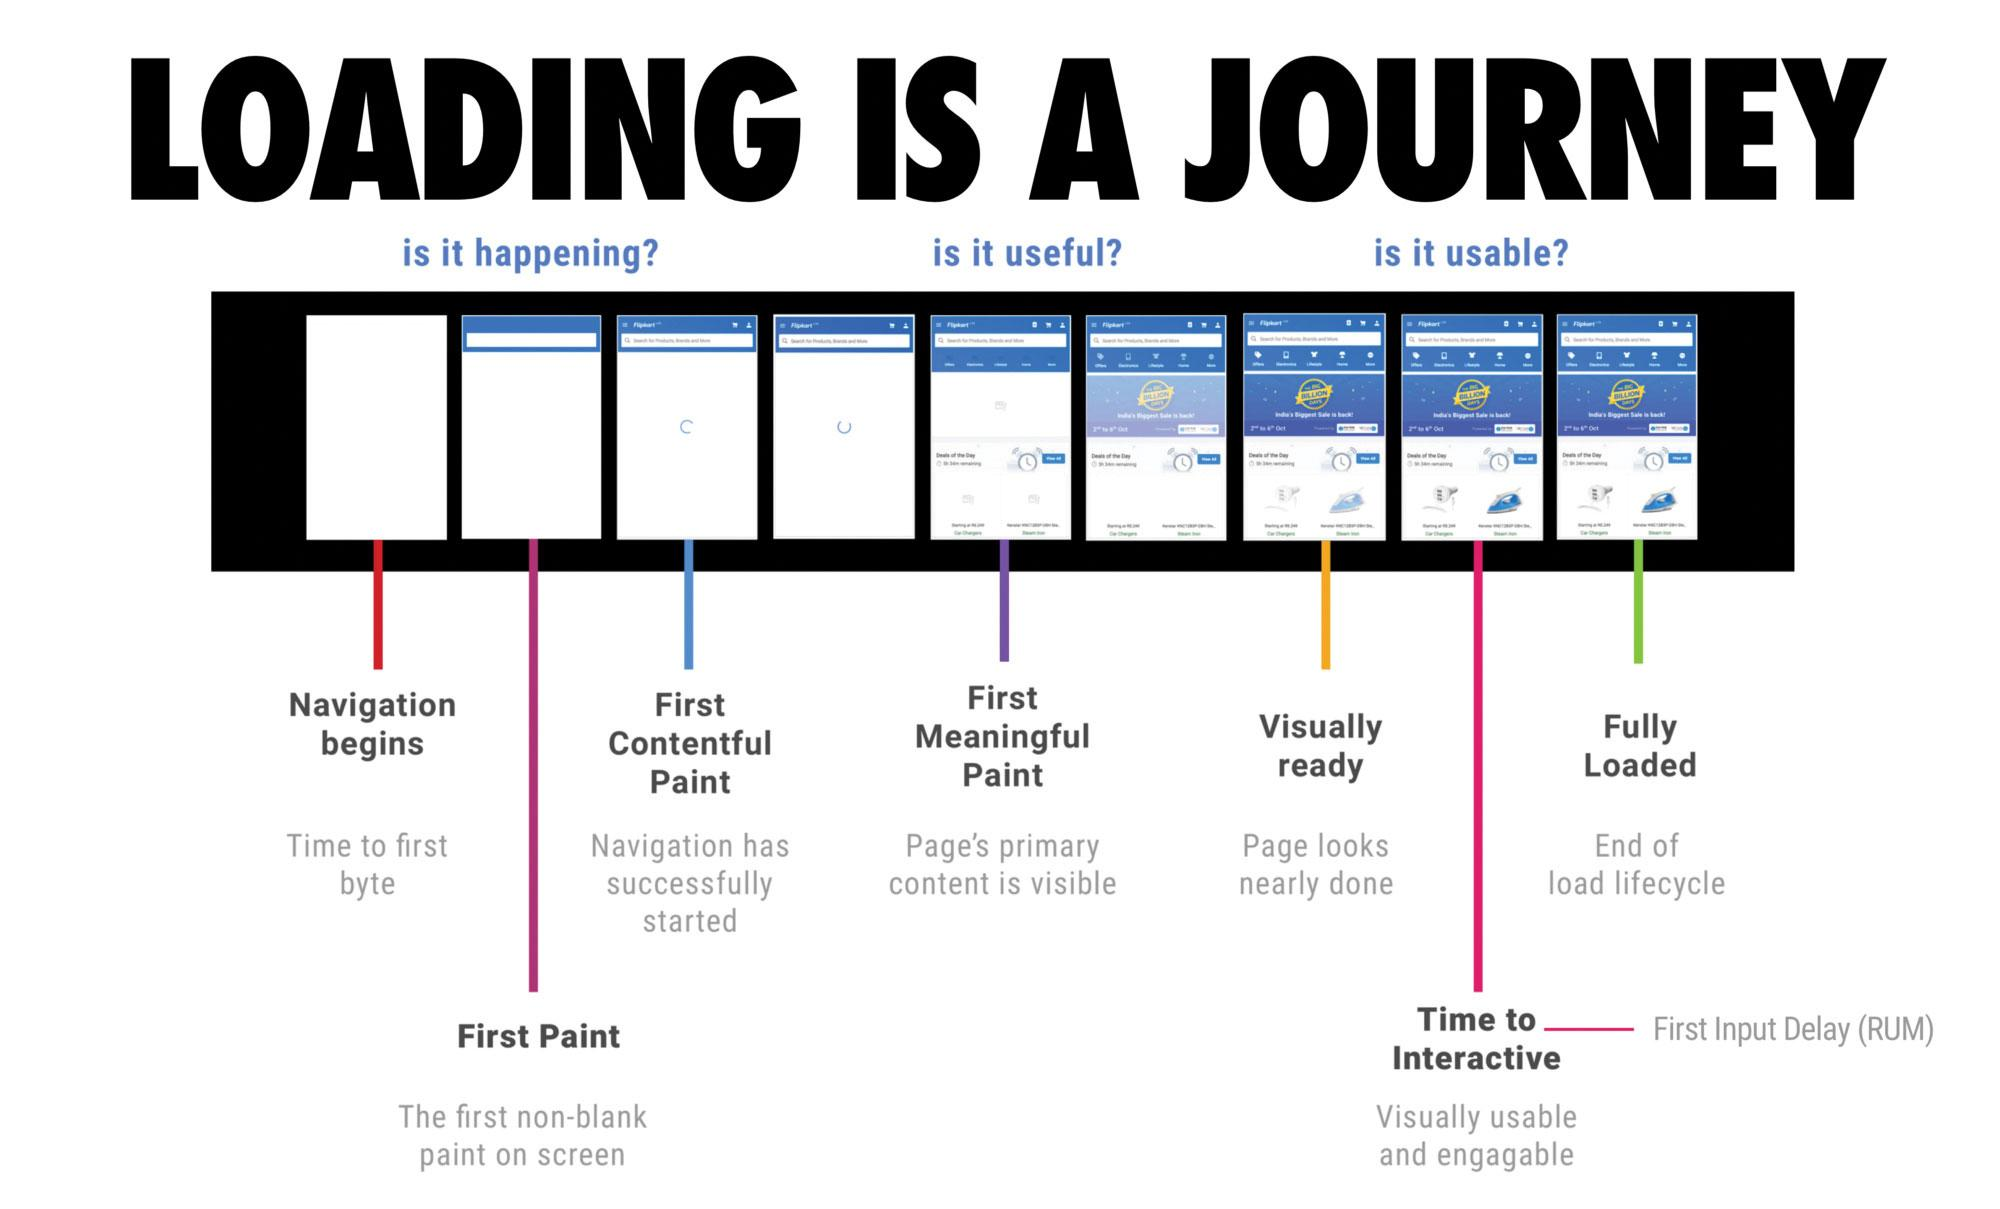 Loading is a journey infographic